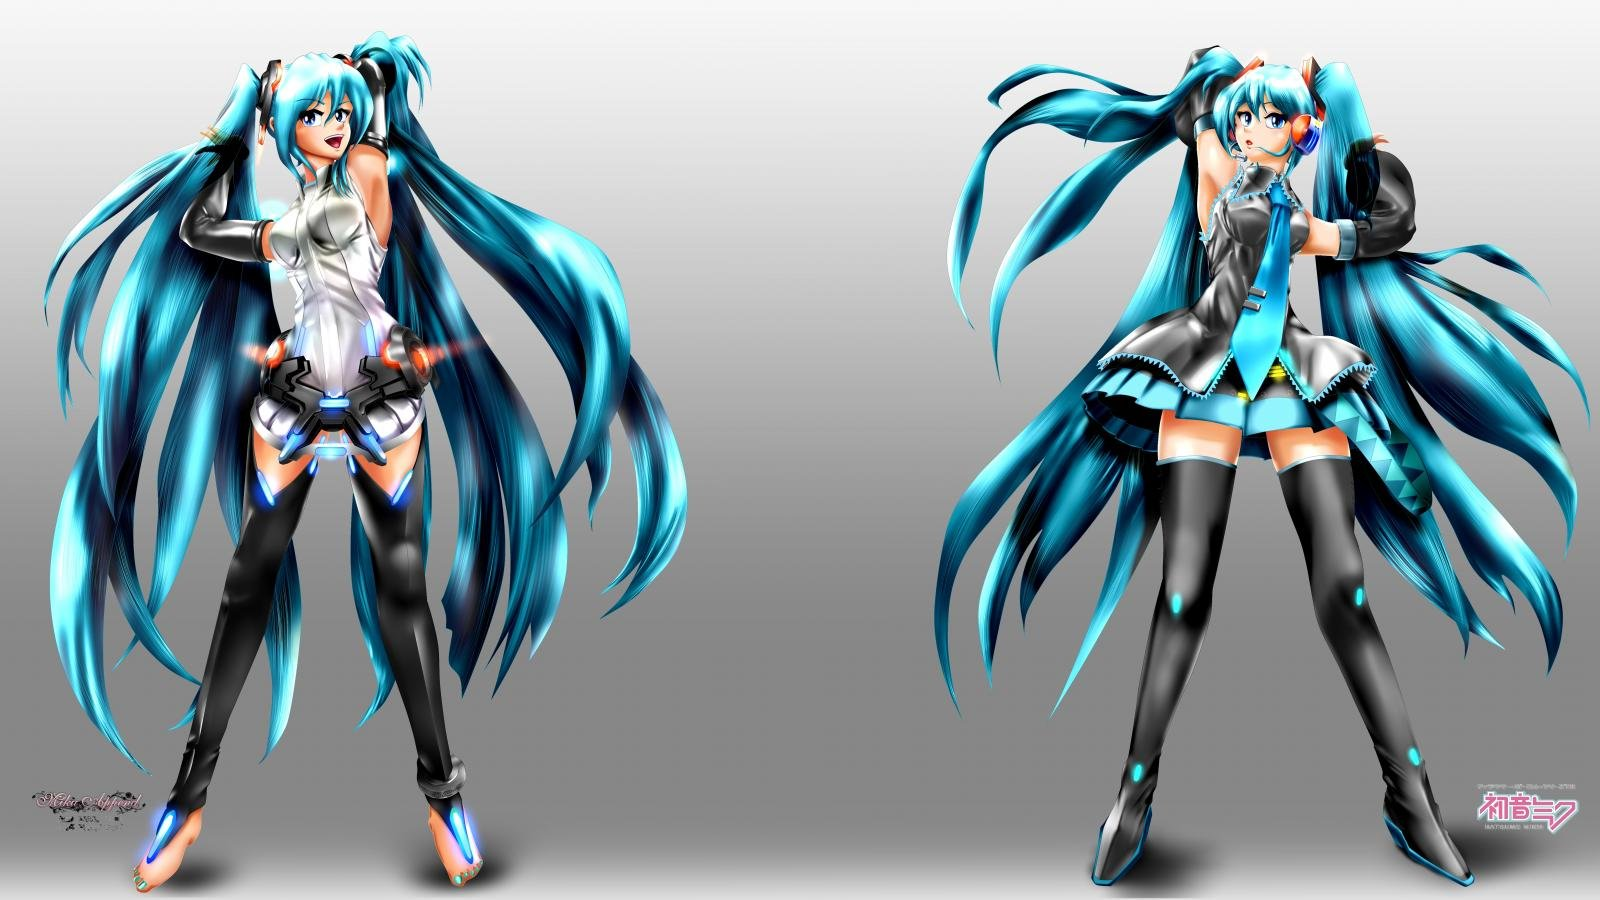 Download hd 1600x900 Hatsune Miku computer wallpaper ID:4342 for free